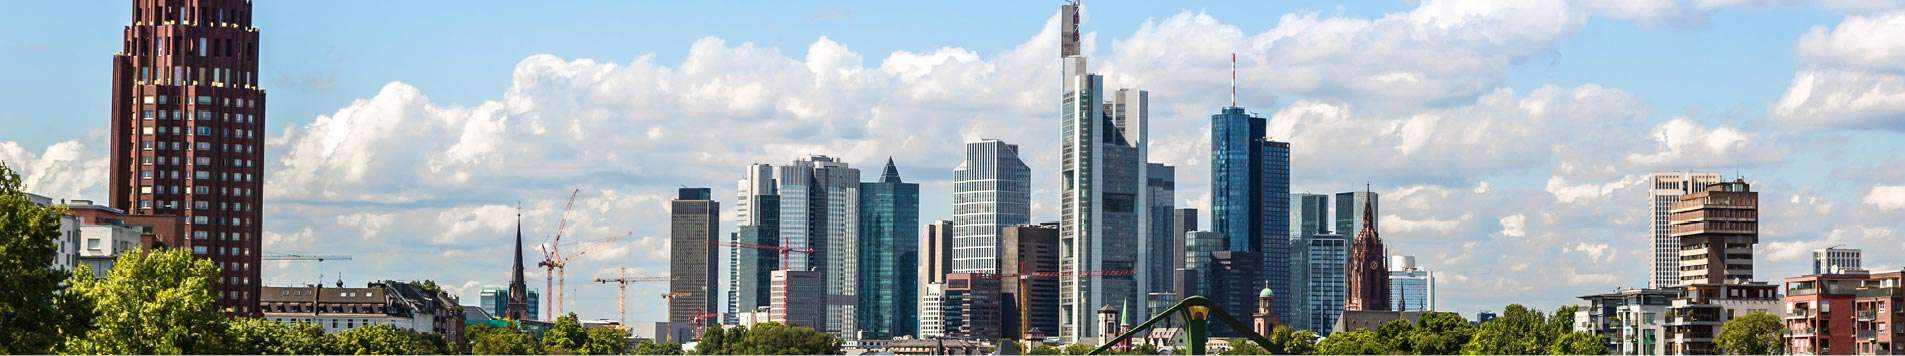 M&A - Mergers & Acquisitions Frankfurt am Main